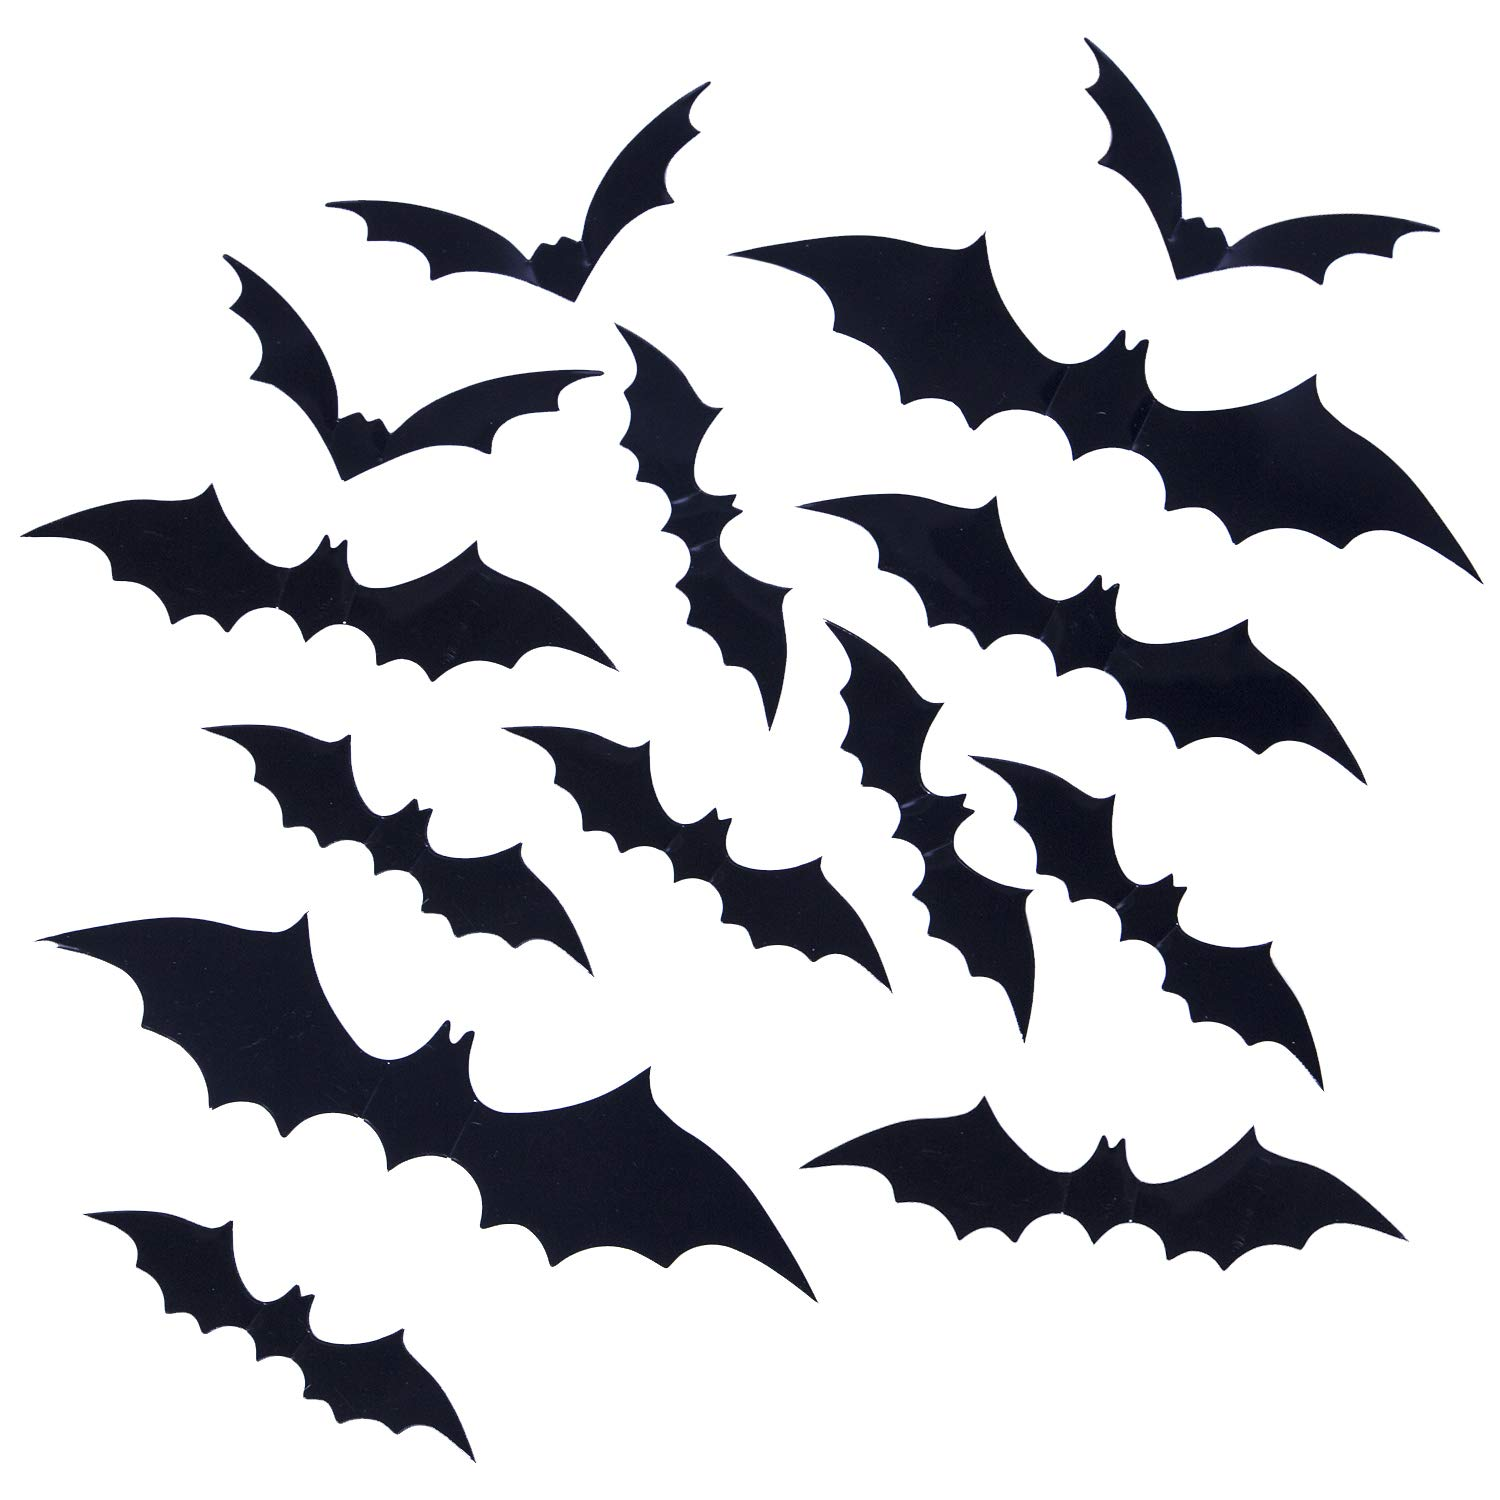 120 Pack Halloween Decorations Bat Decals Plastic 3D Wall Bats Stickers for Home Window Decor Party Supplies (Black) YHmall